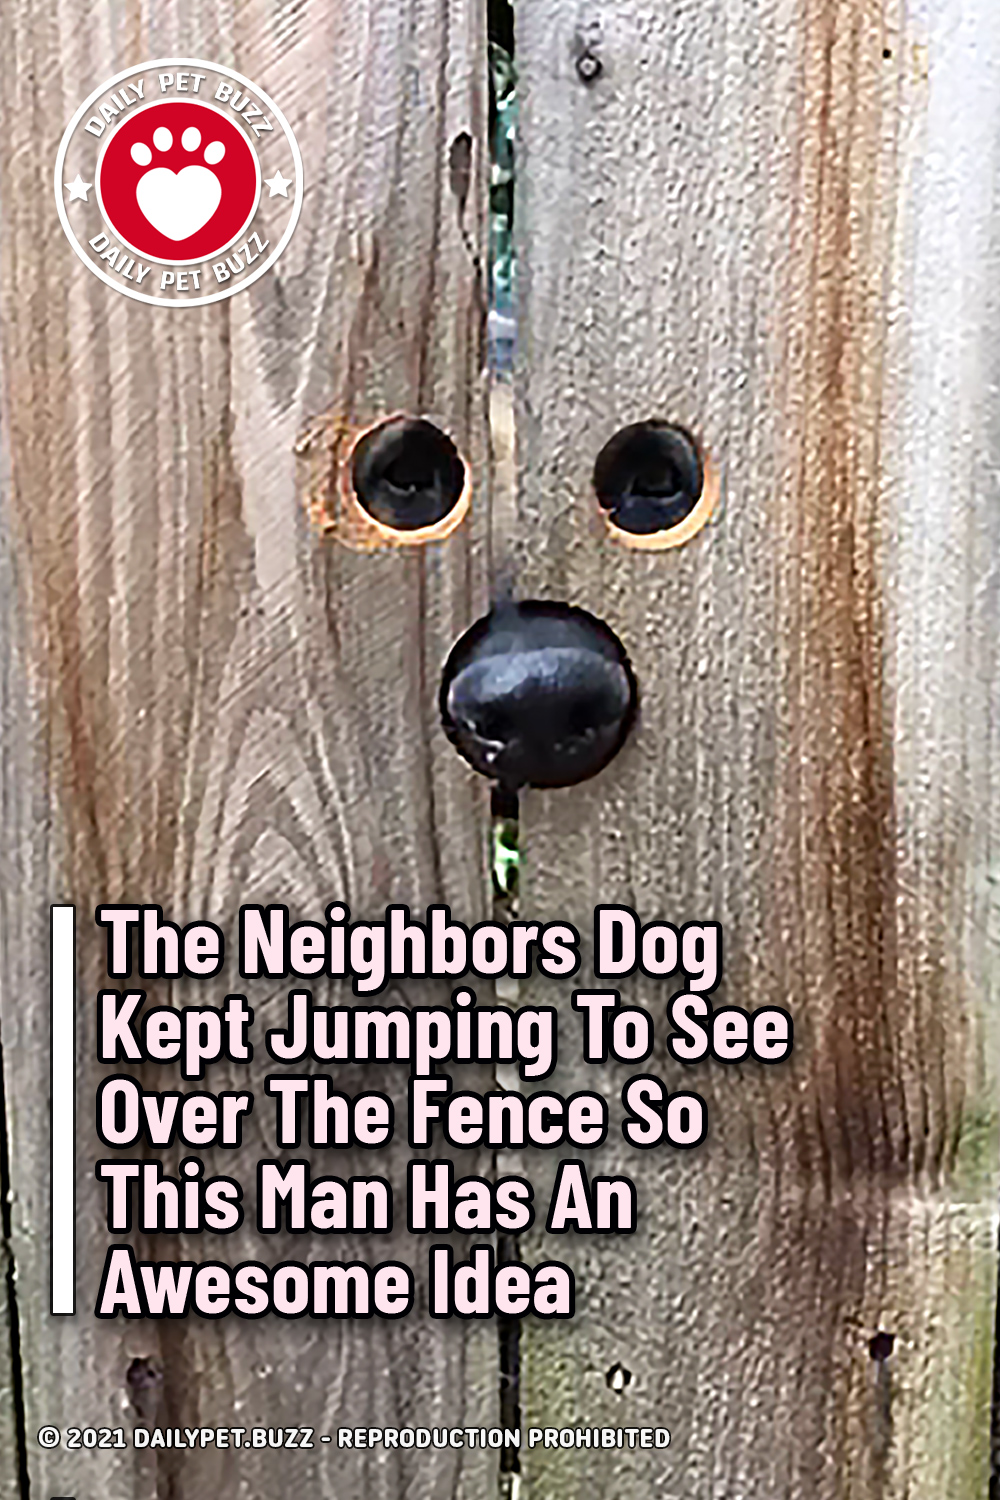 The Neighbors Dog Kept Jumping To See Over The Fence So This Man Has An Awesome Idea